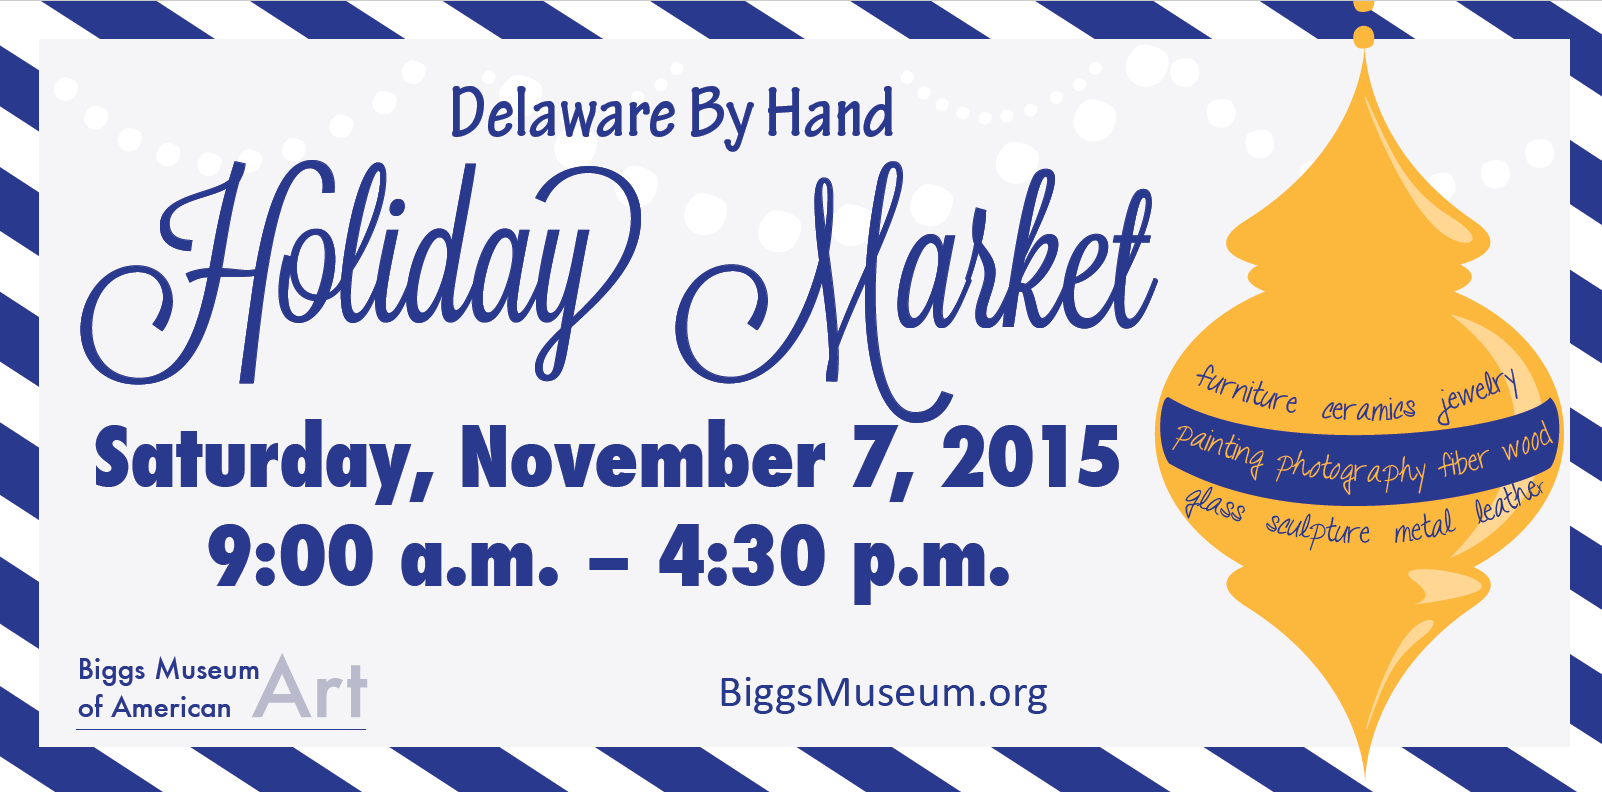 Delaware By Hand Holiday Market | Biggs Museum of American Art